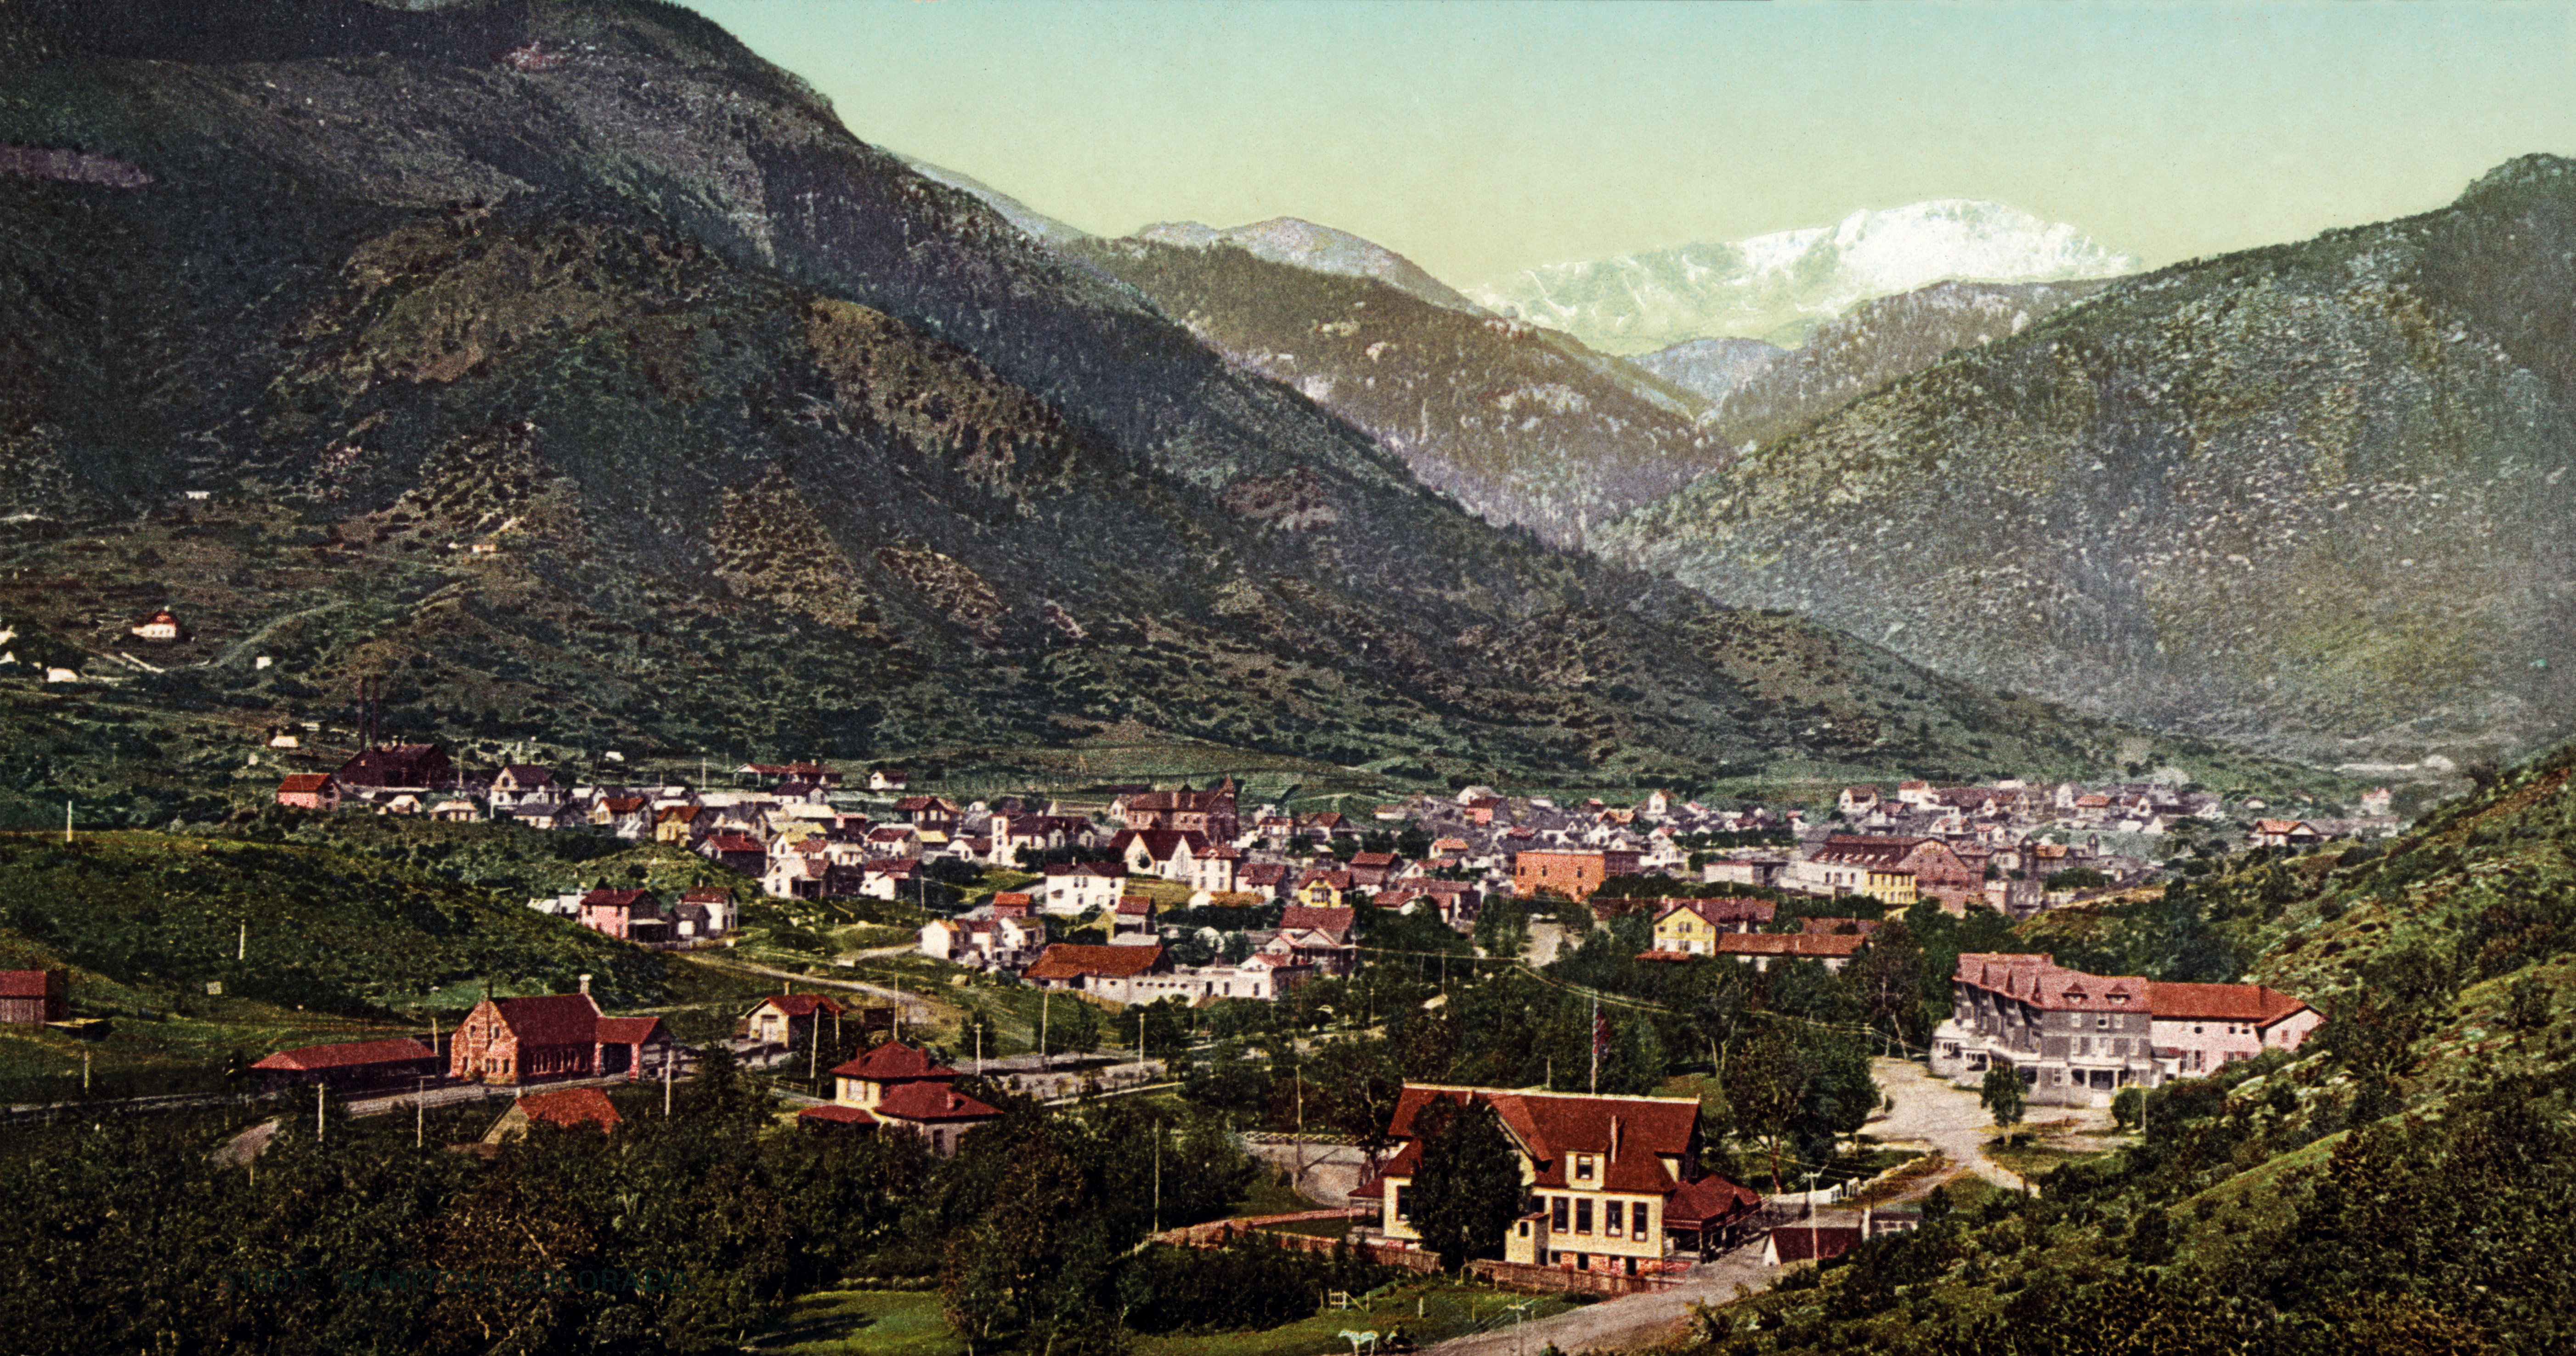 Manitou Springs, CO, in 1902. From the Public Domain. Photo source: Wikipedia